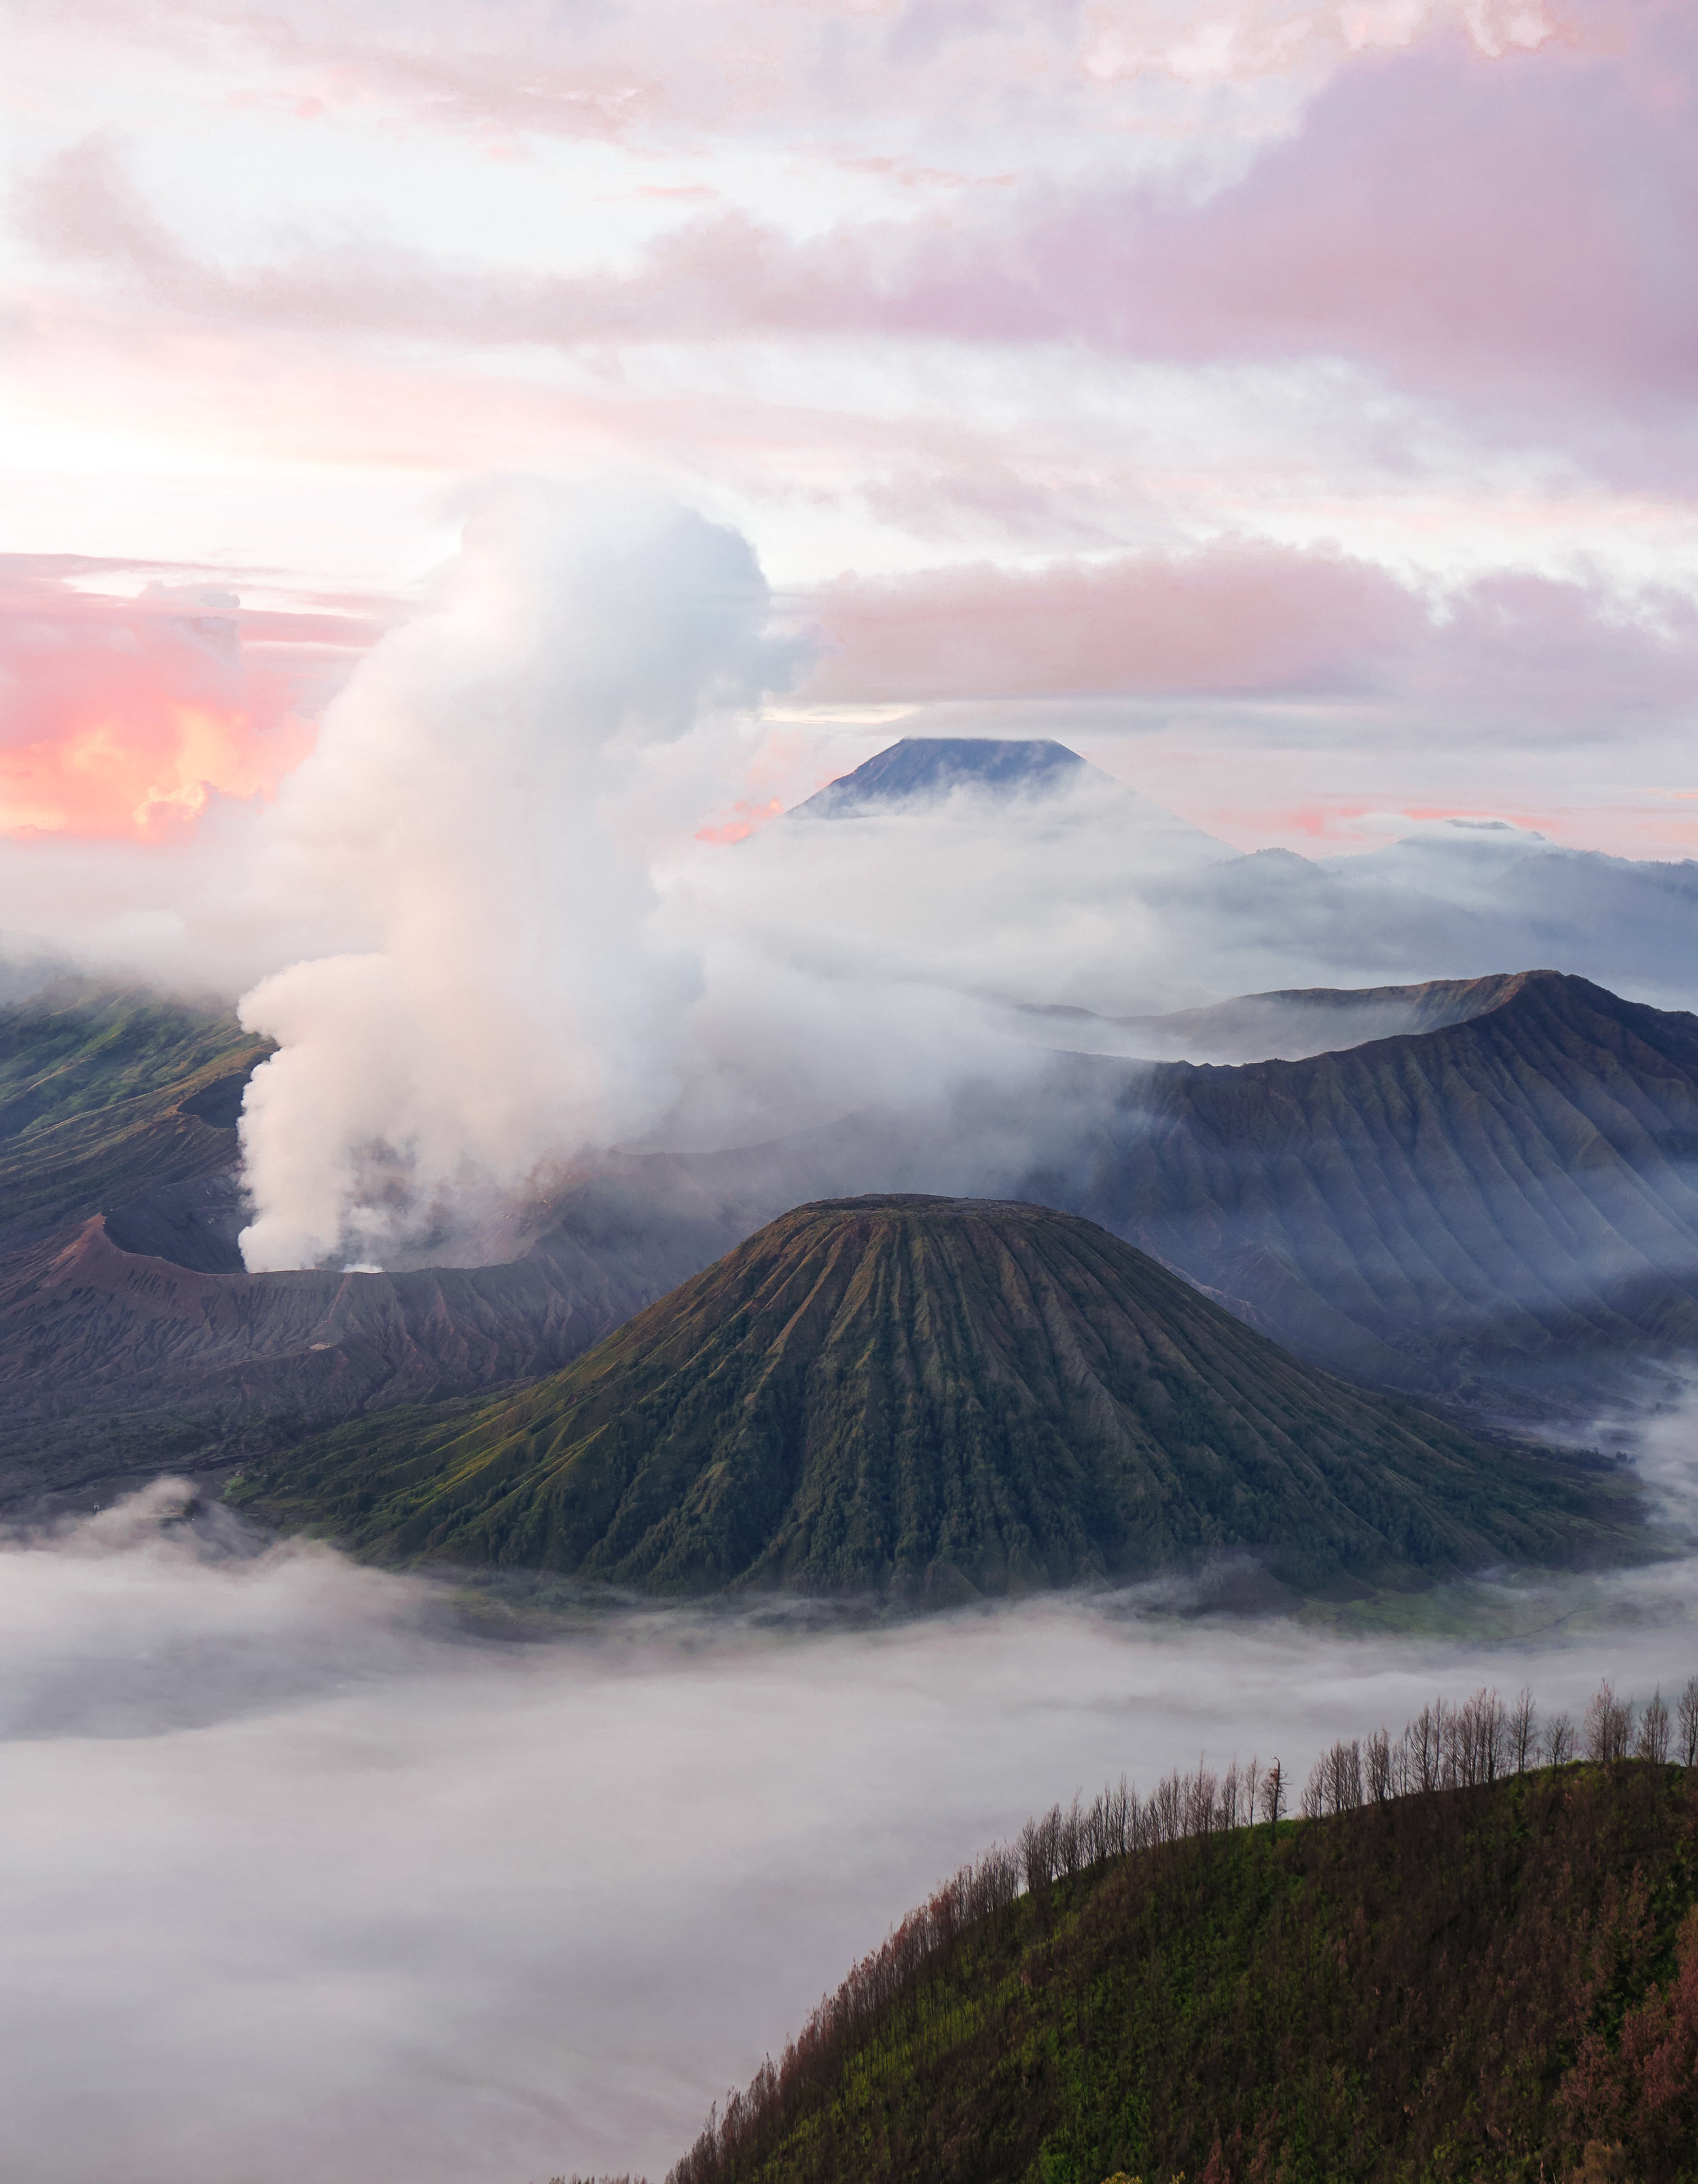 curio.trips.indonesia.java.bromo.sunrise.mist.portrait.jpg